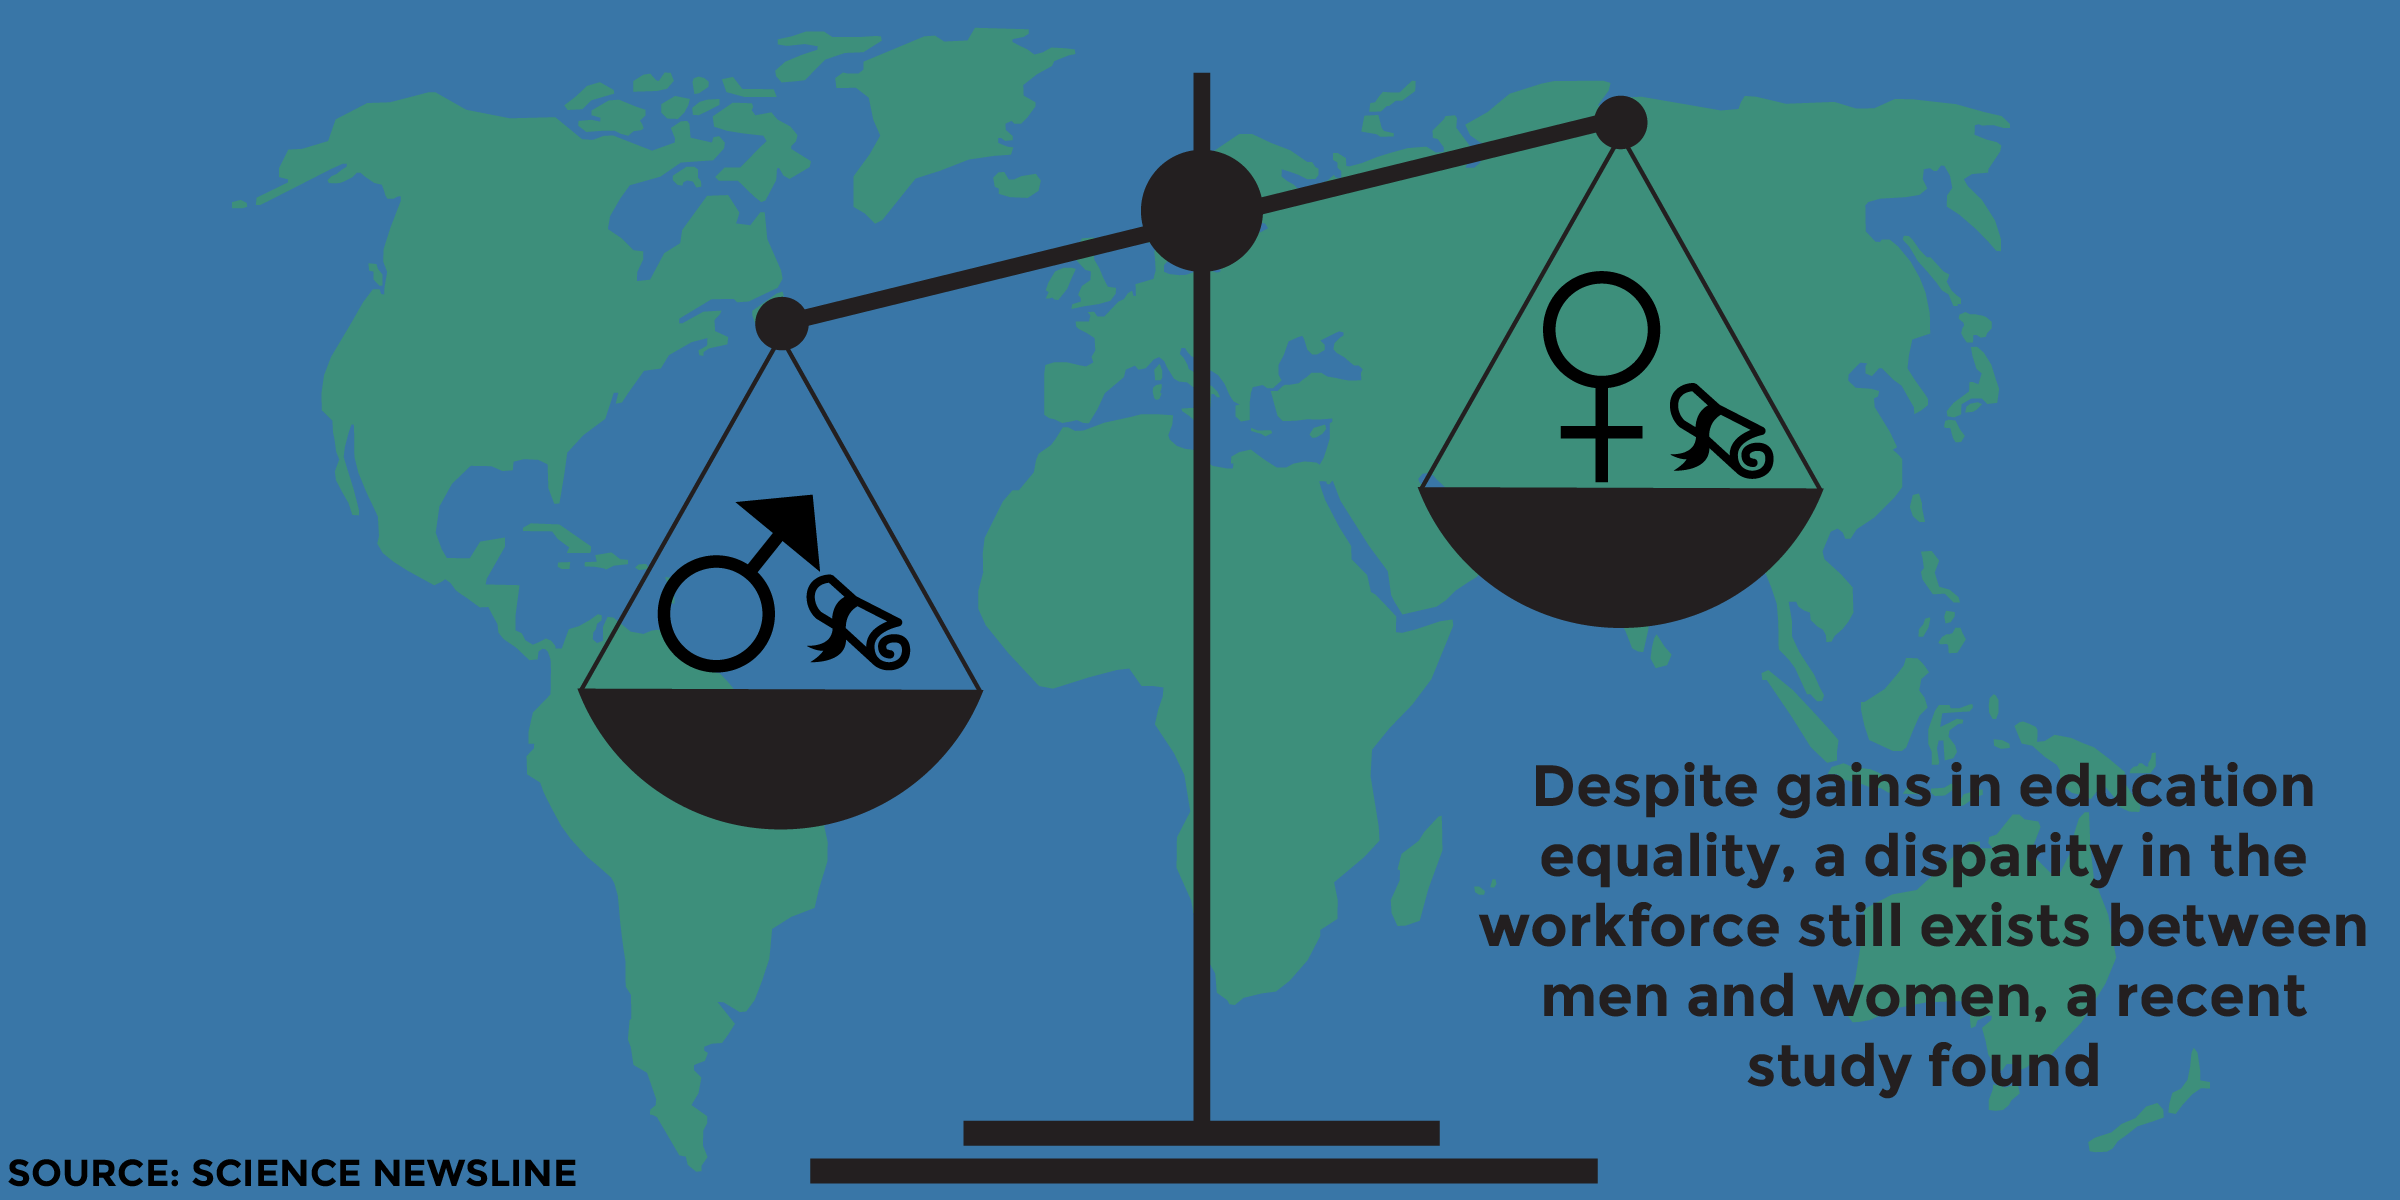 Genders Not Equal In Workforce Despite Education Efforts